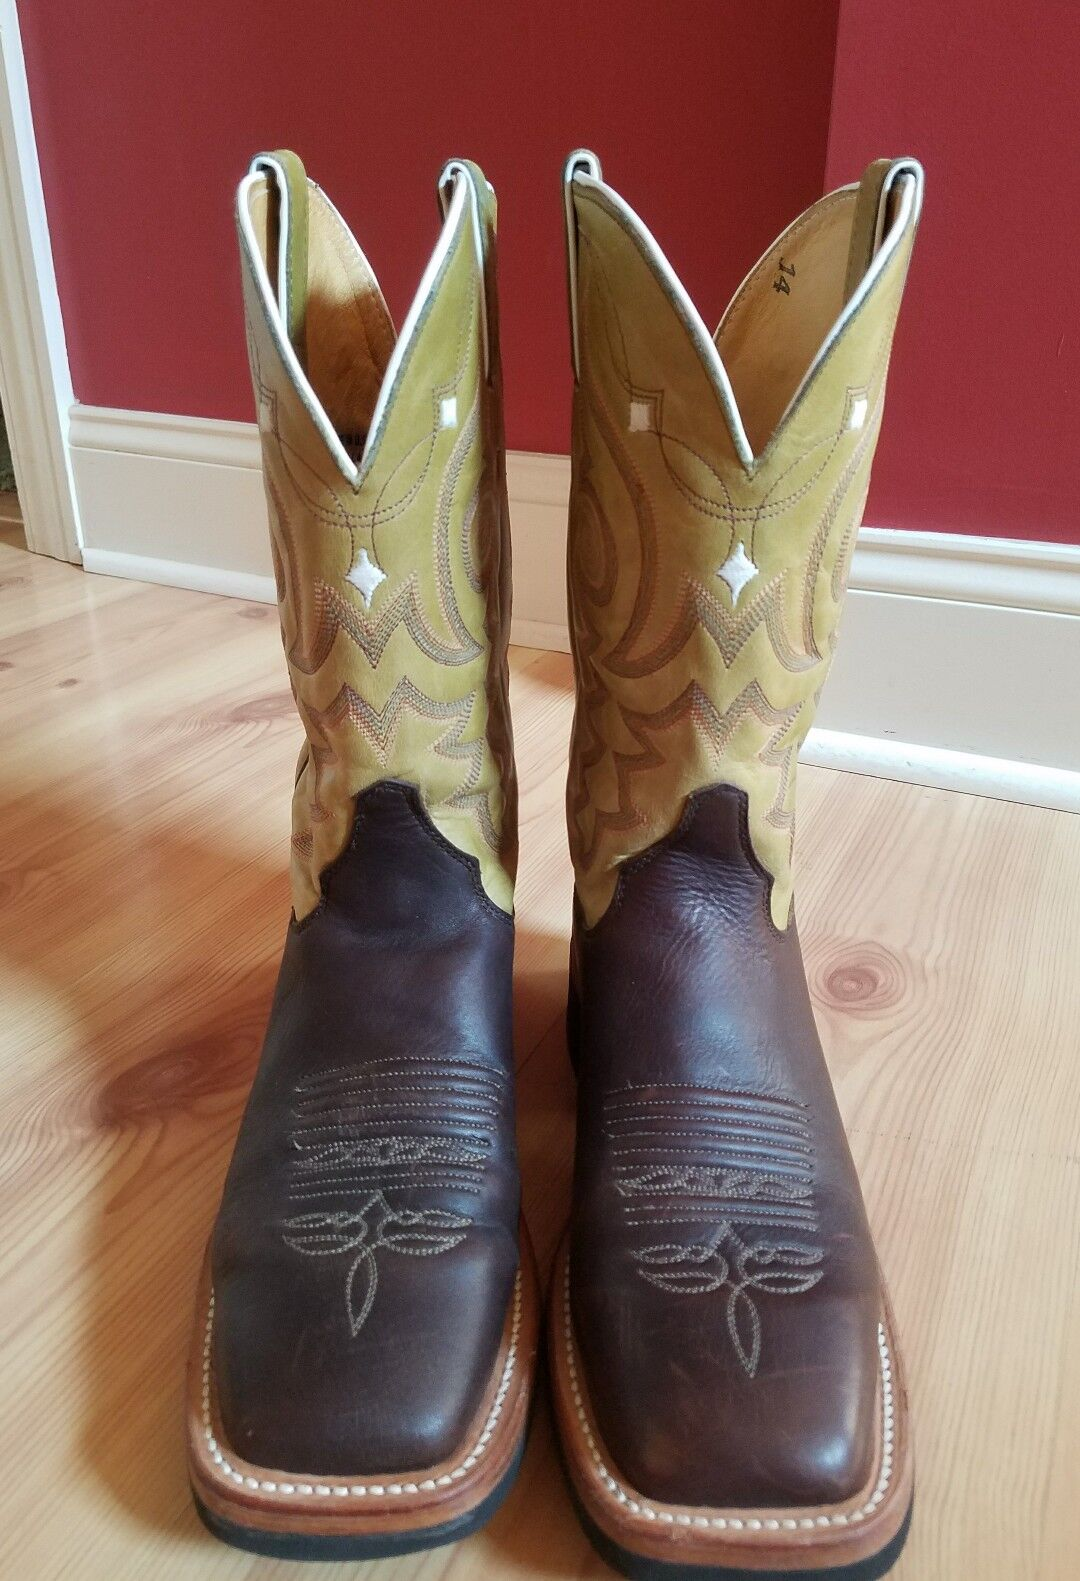 LADIES JUSTIN AQHA Q-CREPE J-FLEX bottes WALNUT WILLOW UPPER L7010 Taille 7.5 B